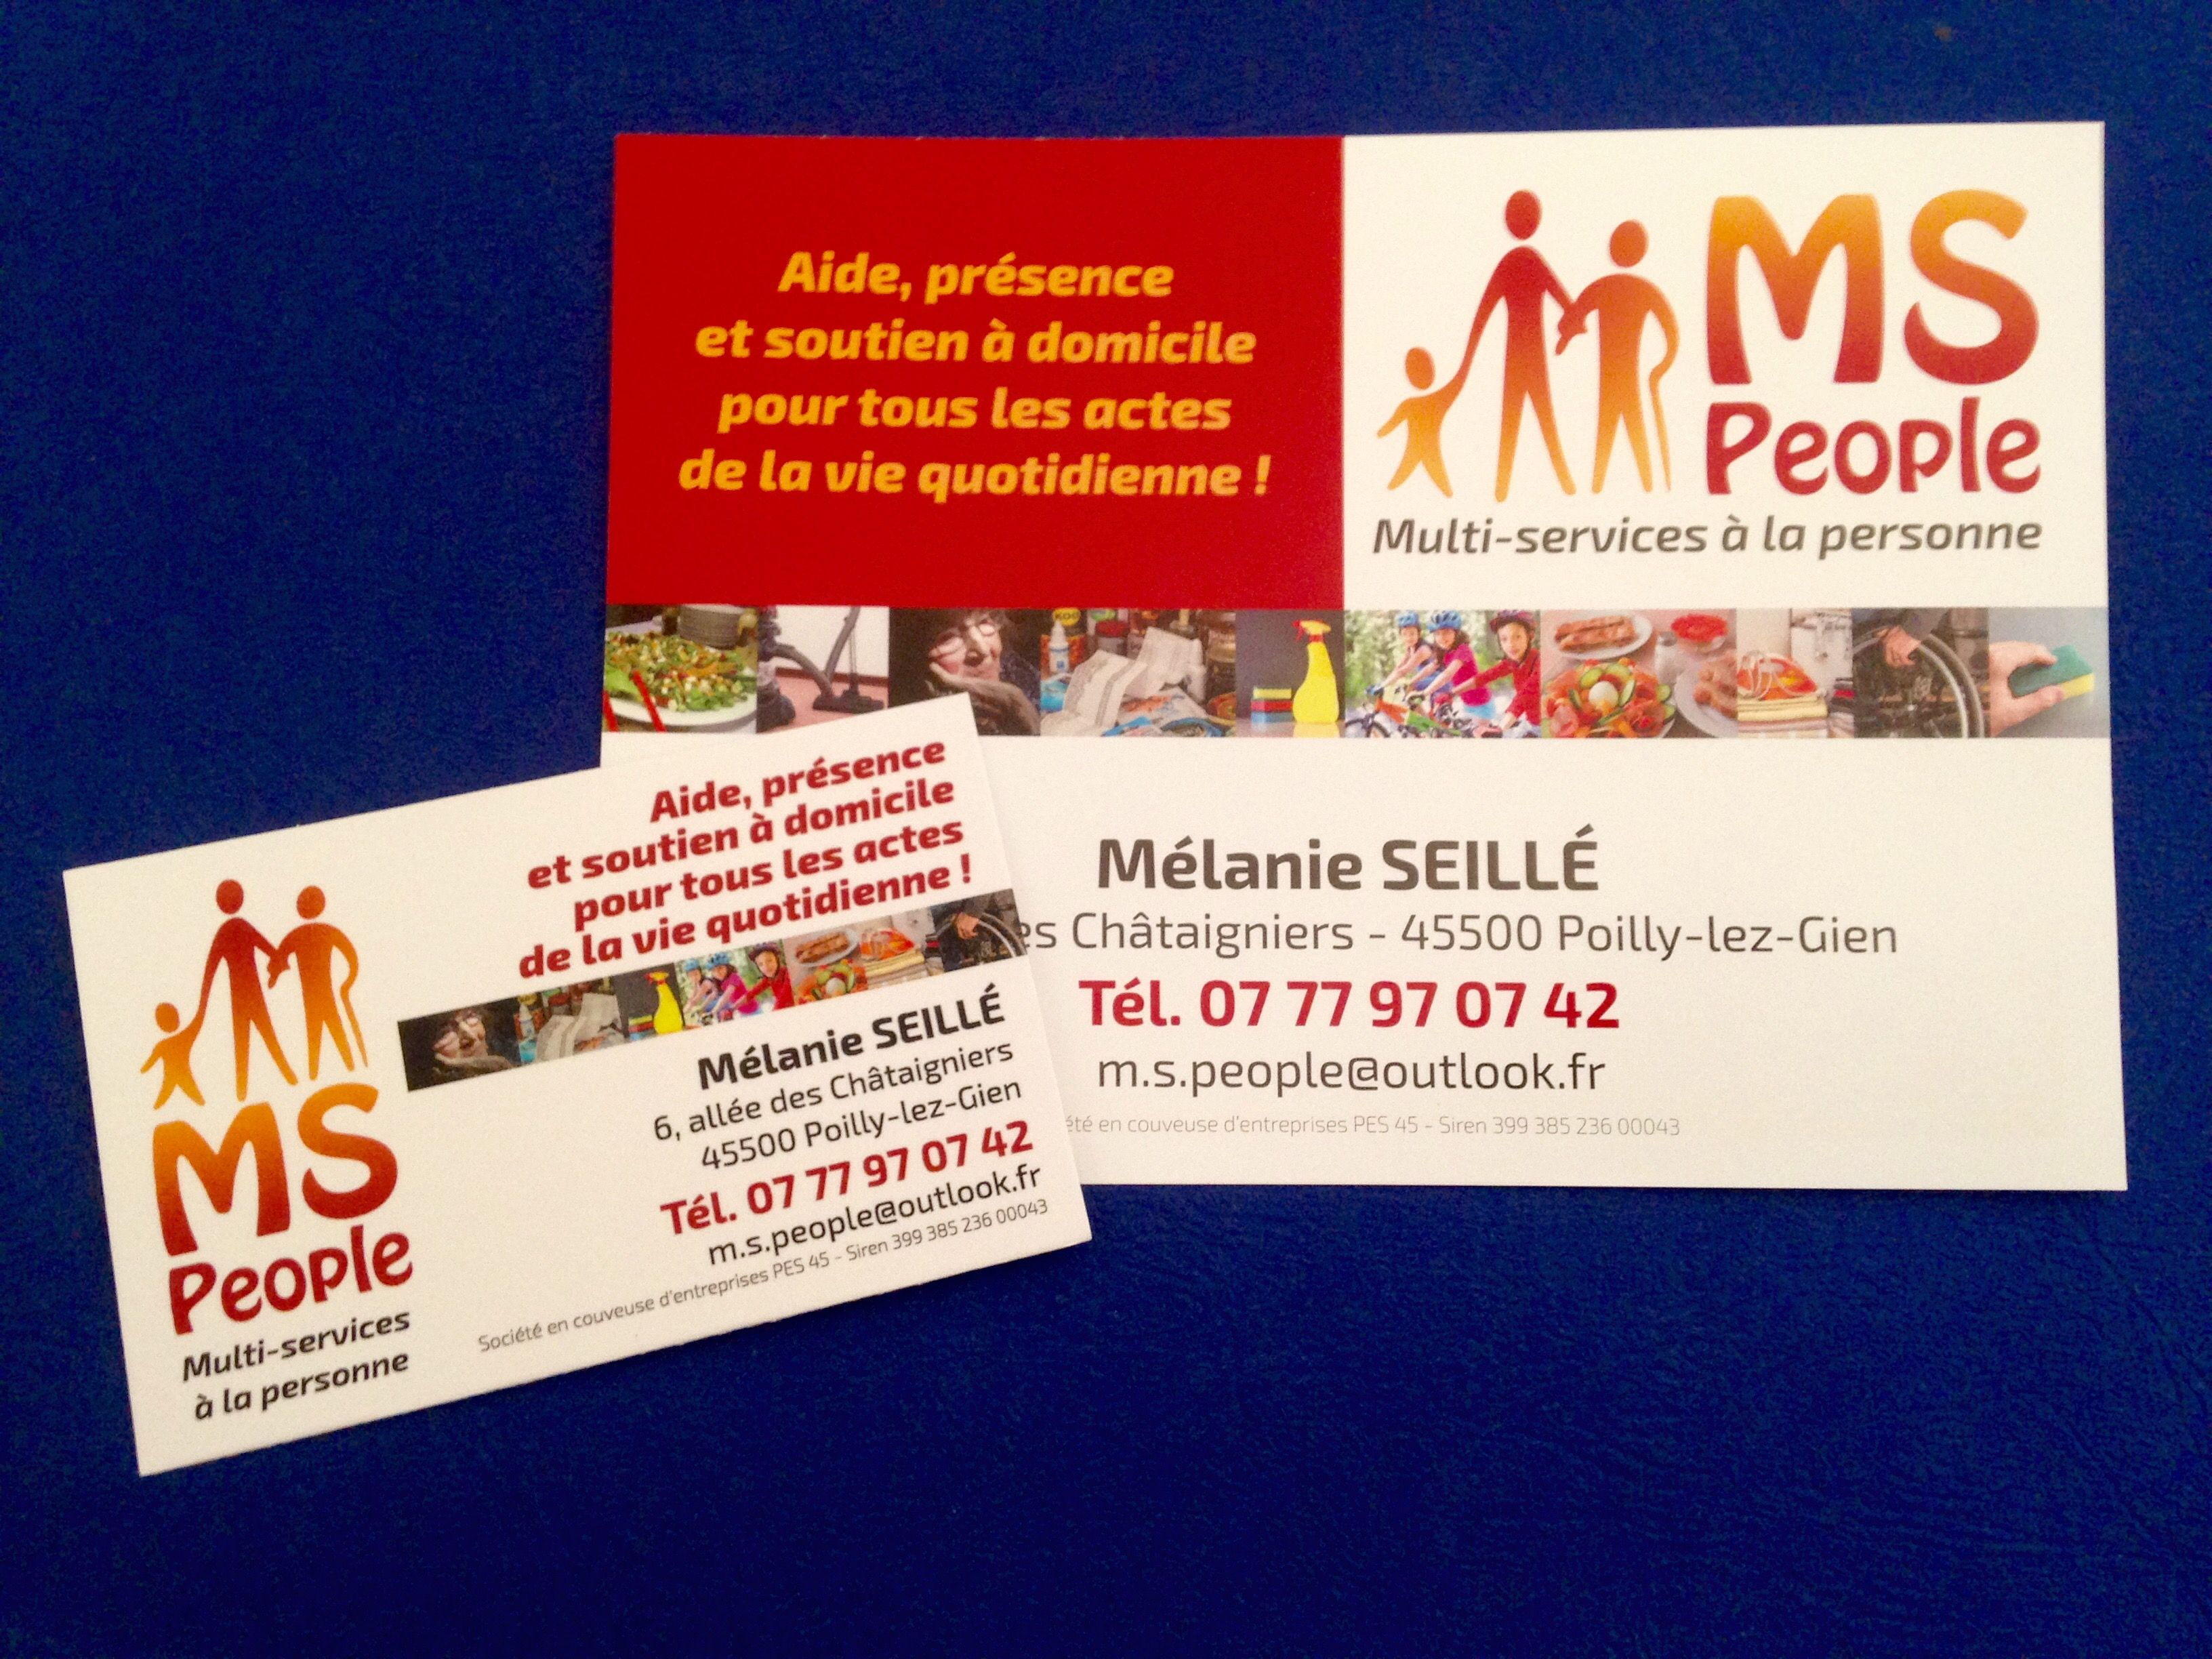 MS People Multi Services La Personne Carte De Visite Et Flyer Recto Verso